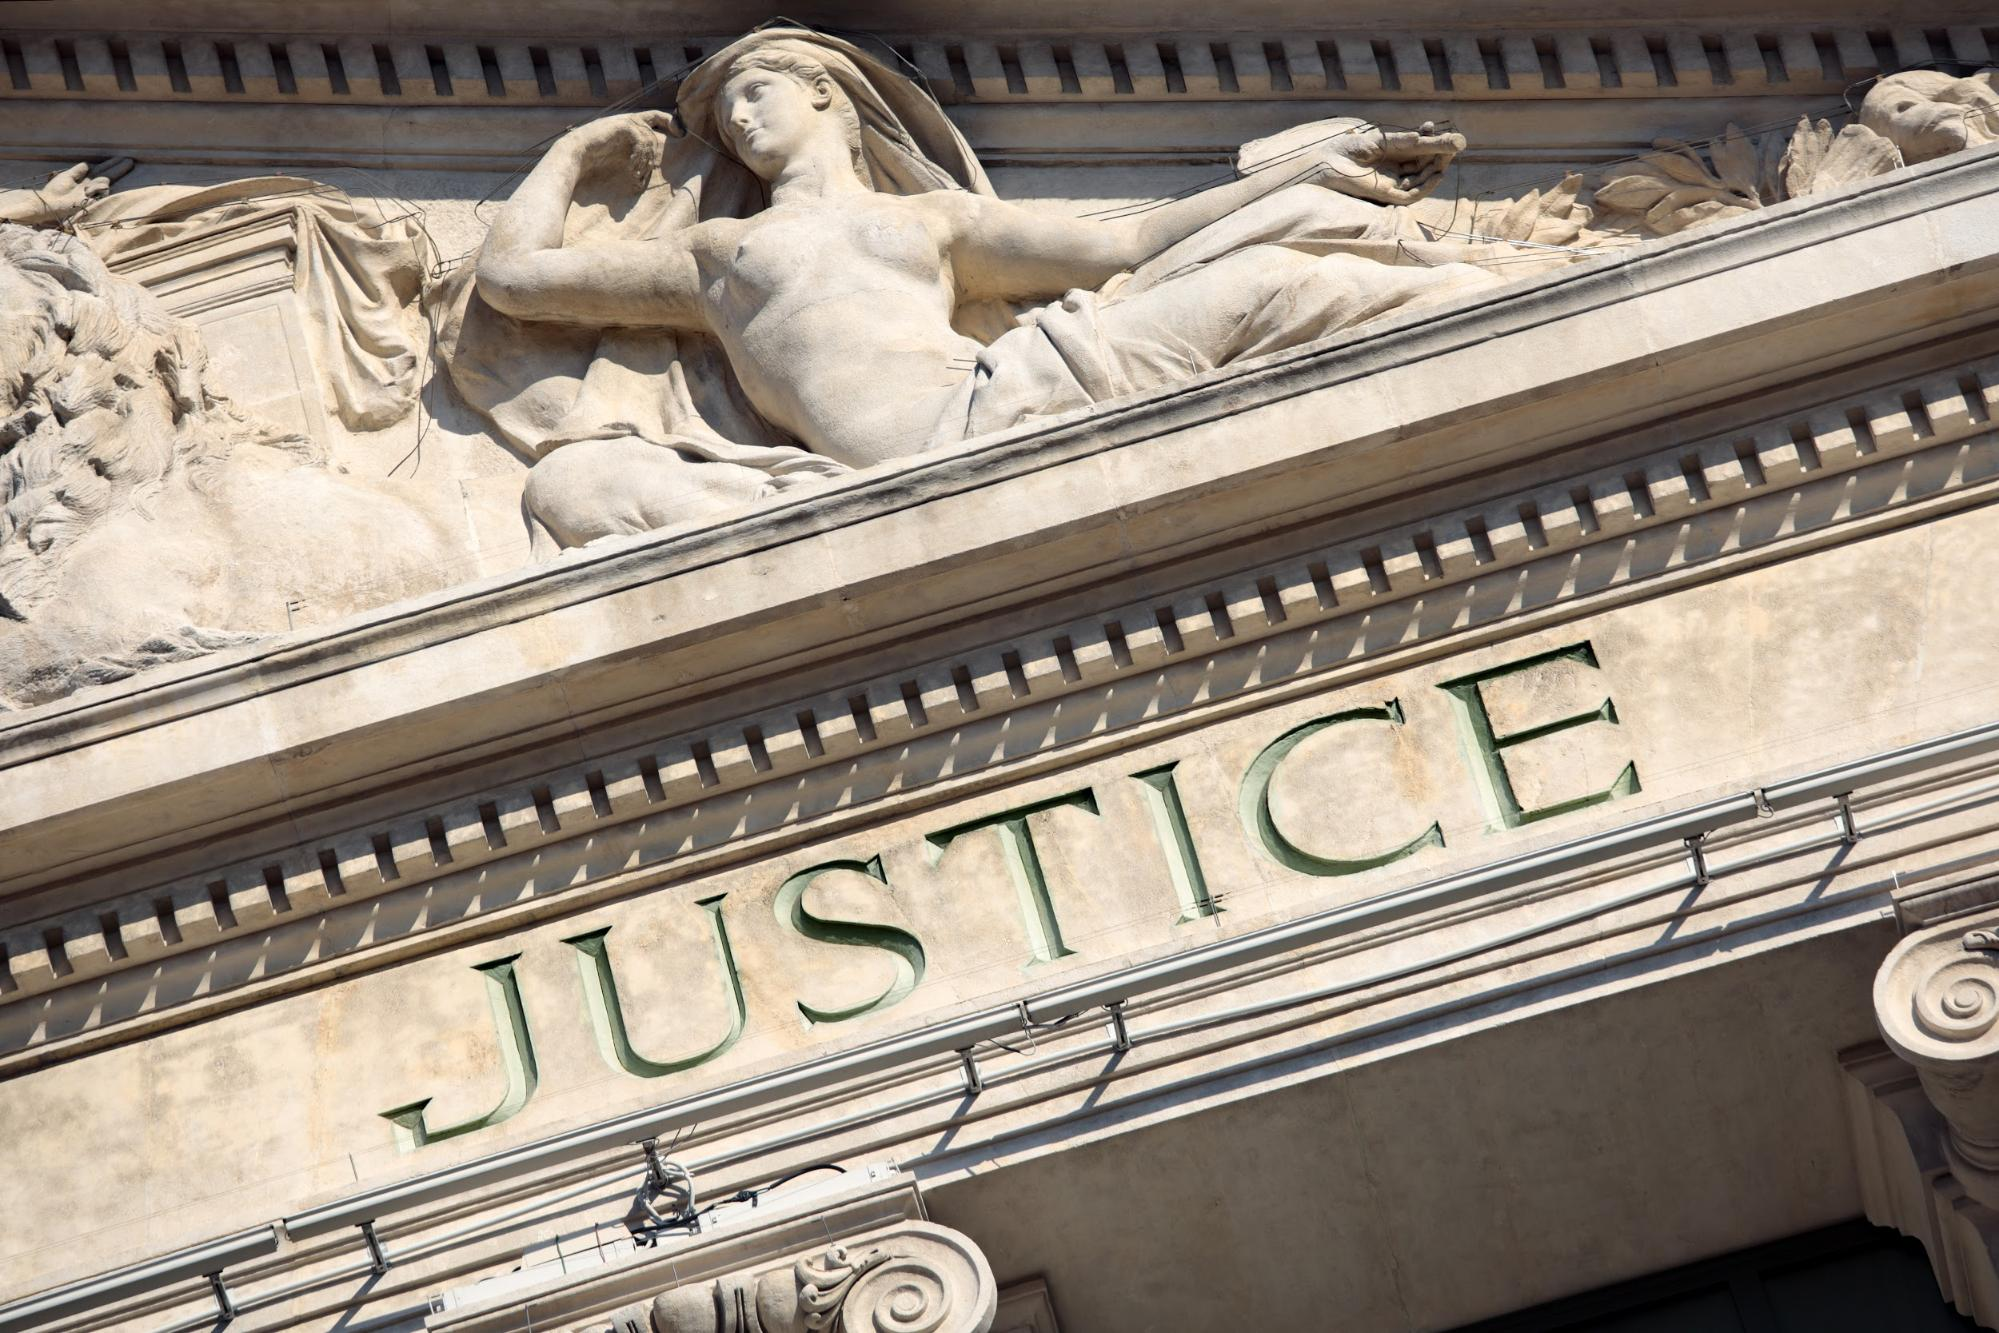 The word justice engraved in front of a courthouse